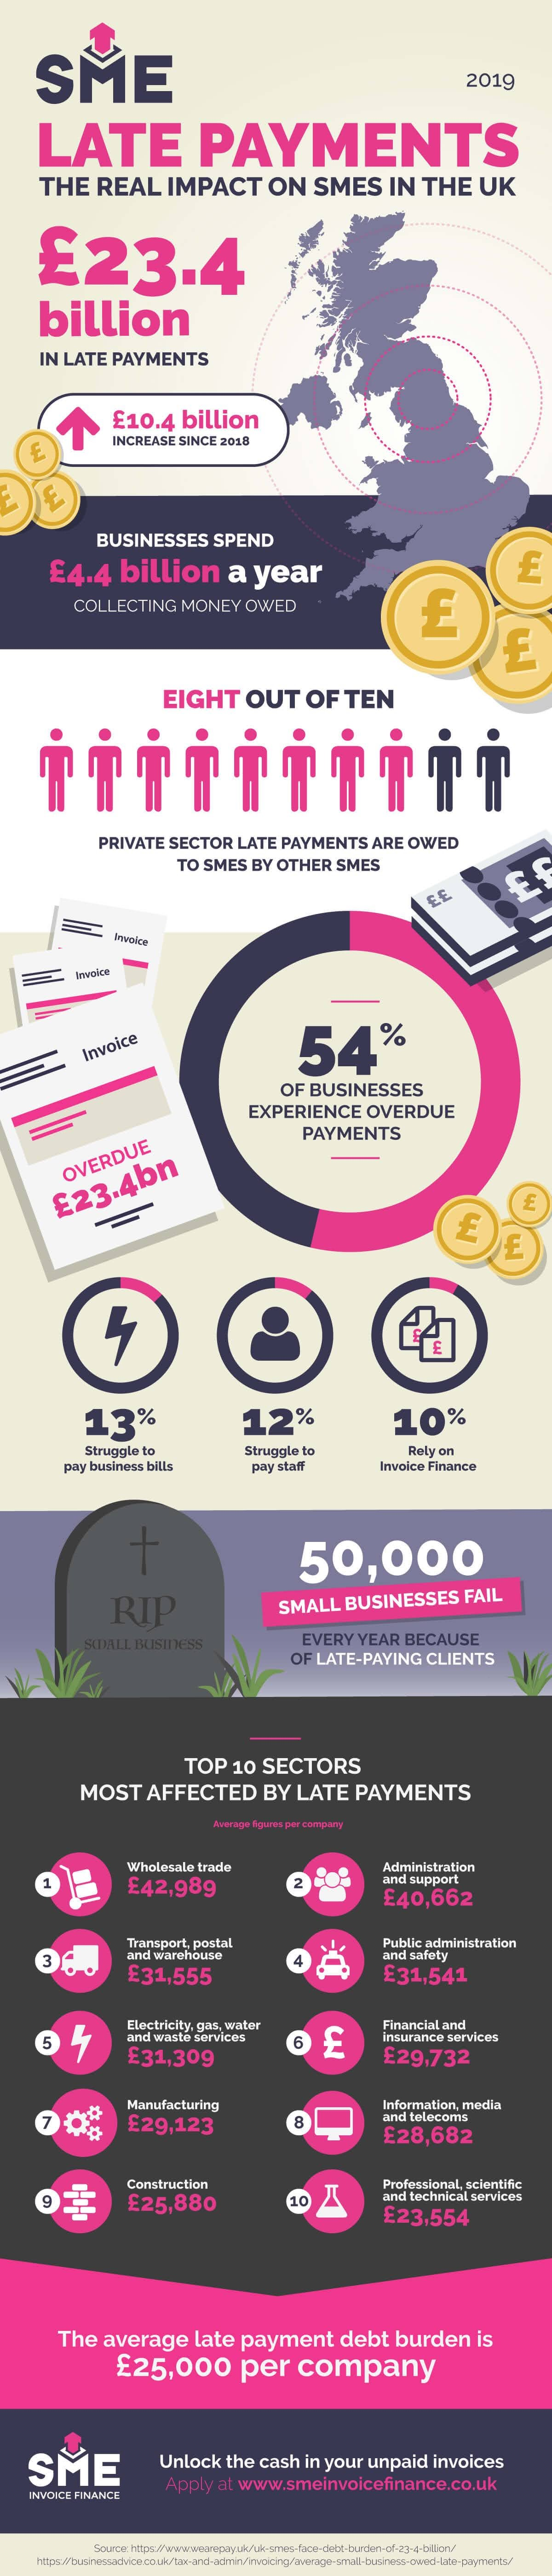 gbp234-billion-owed-to-uk-smes-in-late-payments-infographic